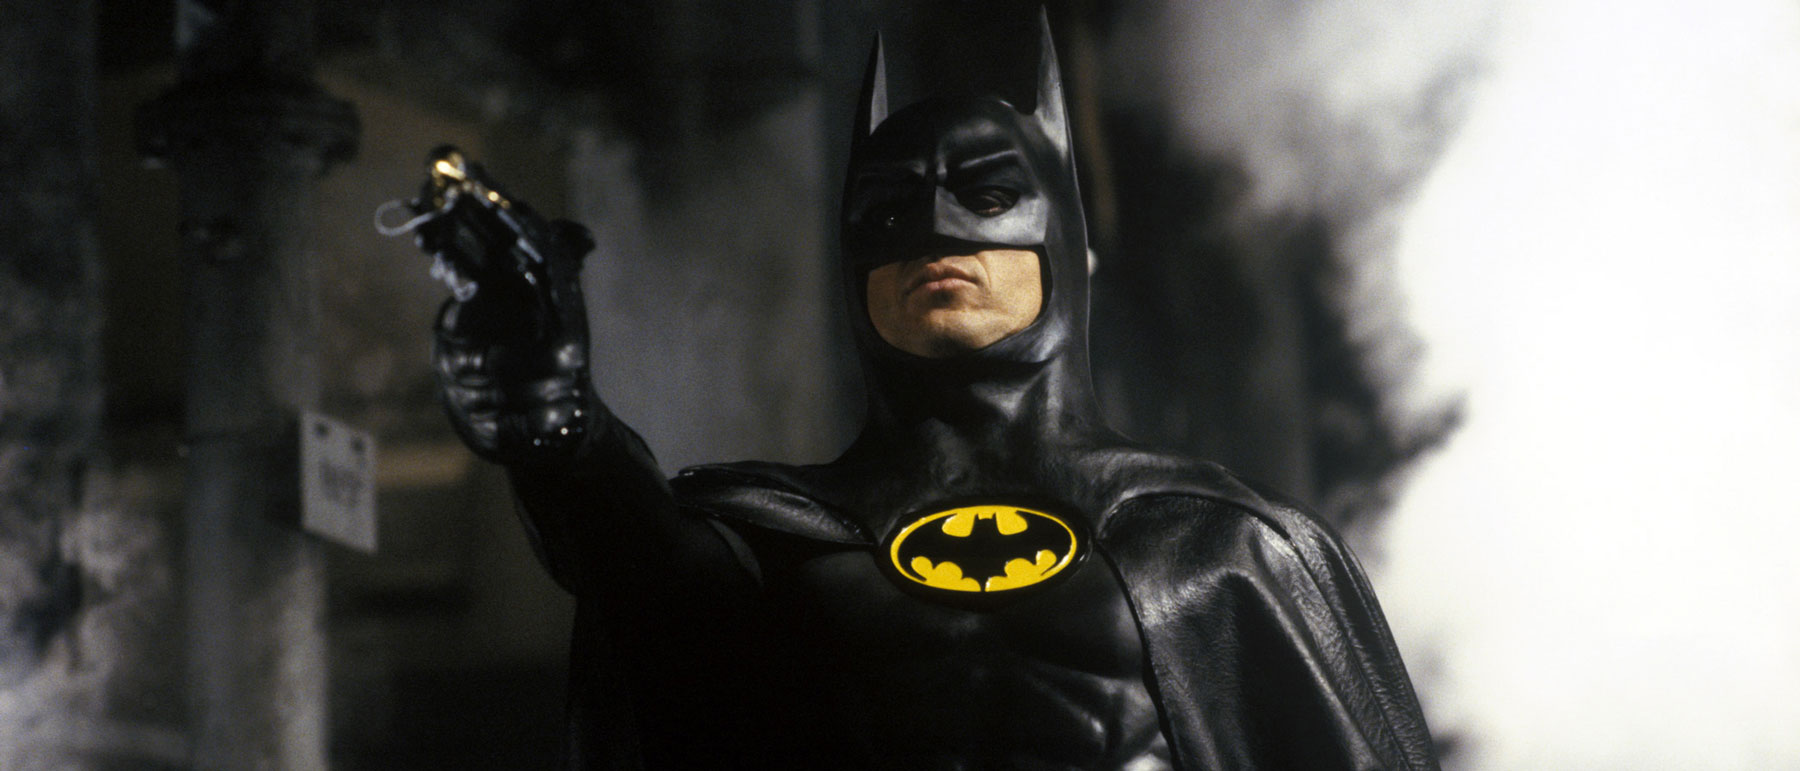 Michael Keaton as Batman in Tim Burton's 1989 Batman